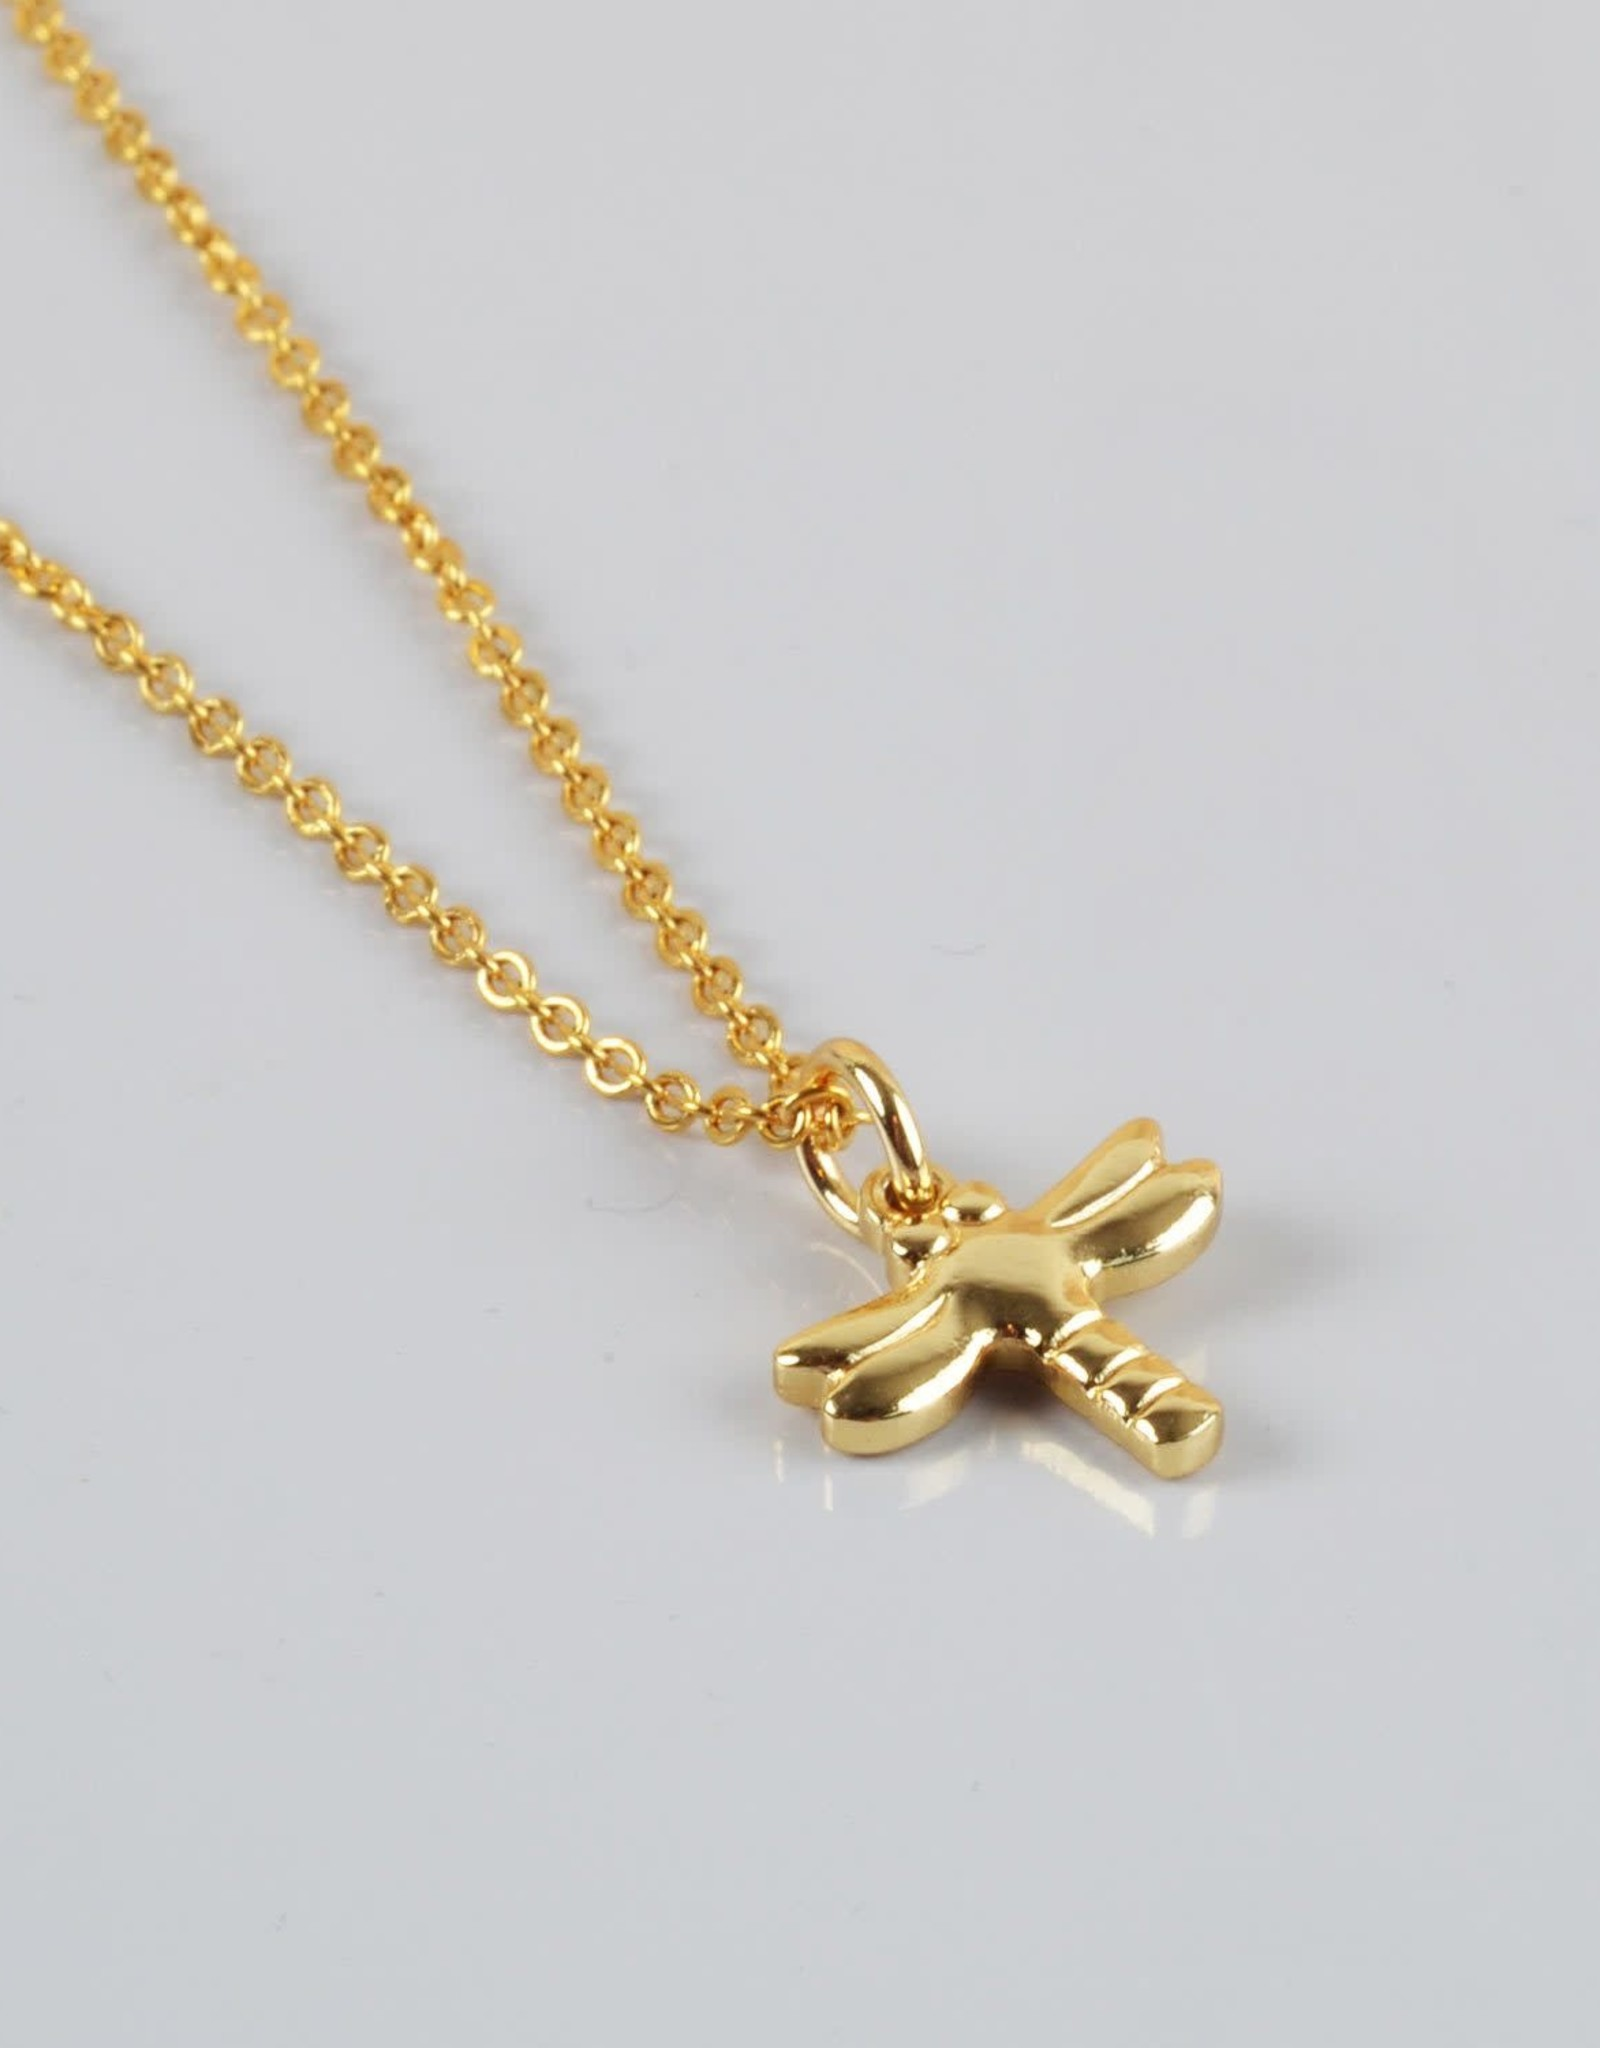 Libelle necklace